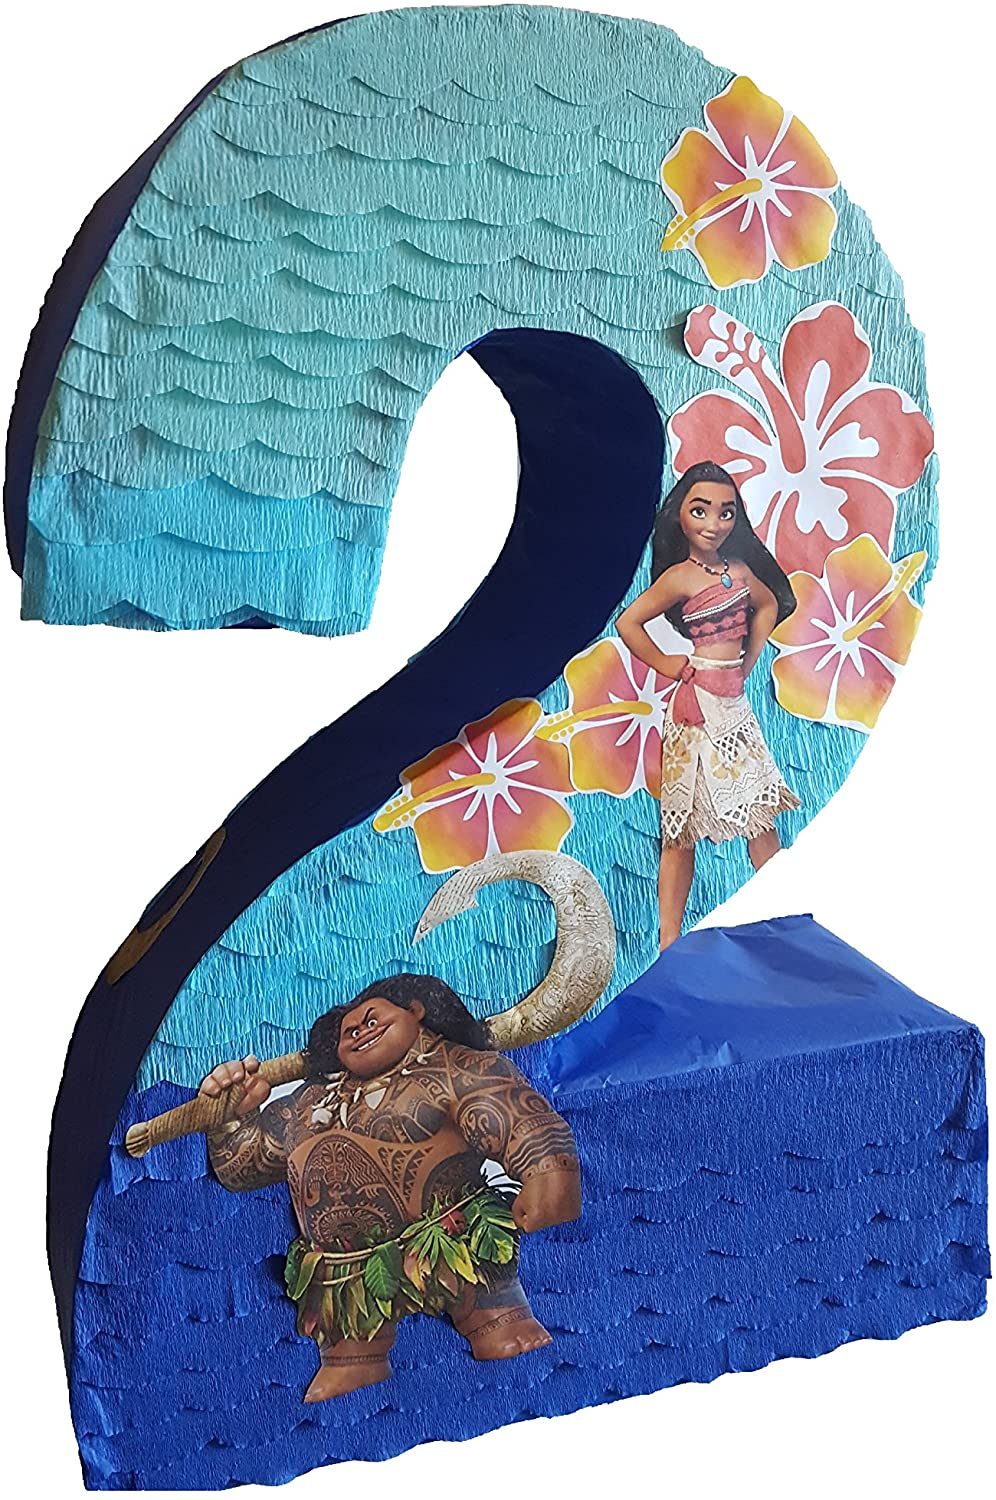 Number pinata inspired by Moana